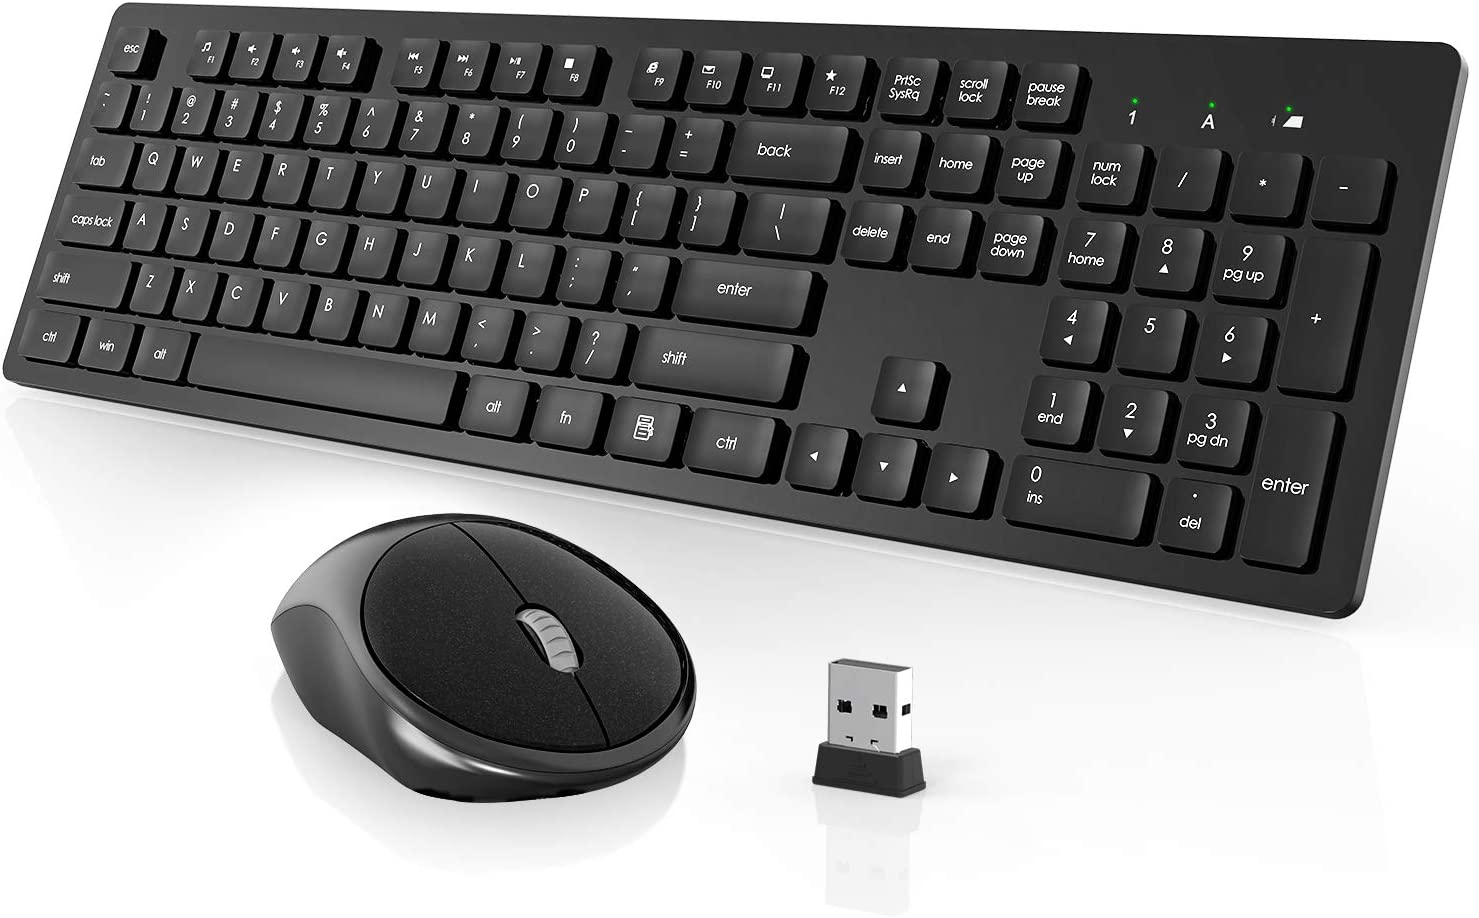 Wireless Keyboard and Mouse, WISFOX Full-Size Wireless Mouse and Keyboard Combo,2.4GHz Silent USB Wireless Keyboard Mouse Combo for PC Desktops Computer, Laptops, Windows: Computers & Accessories